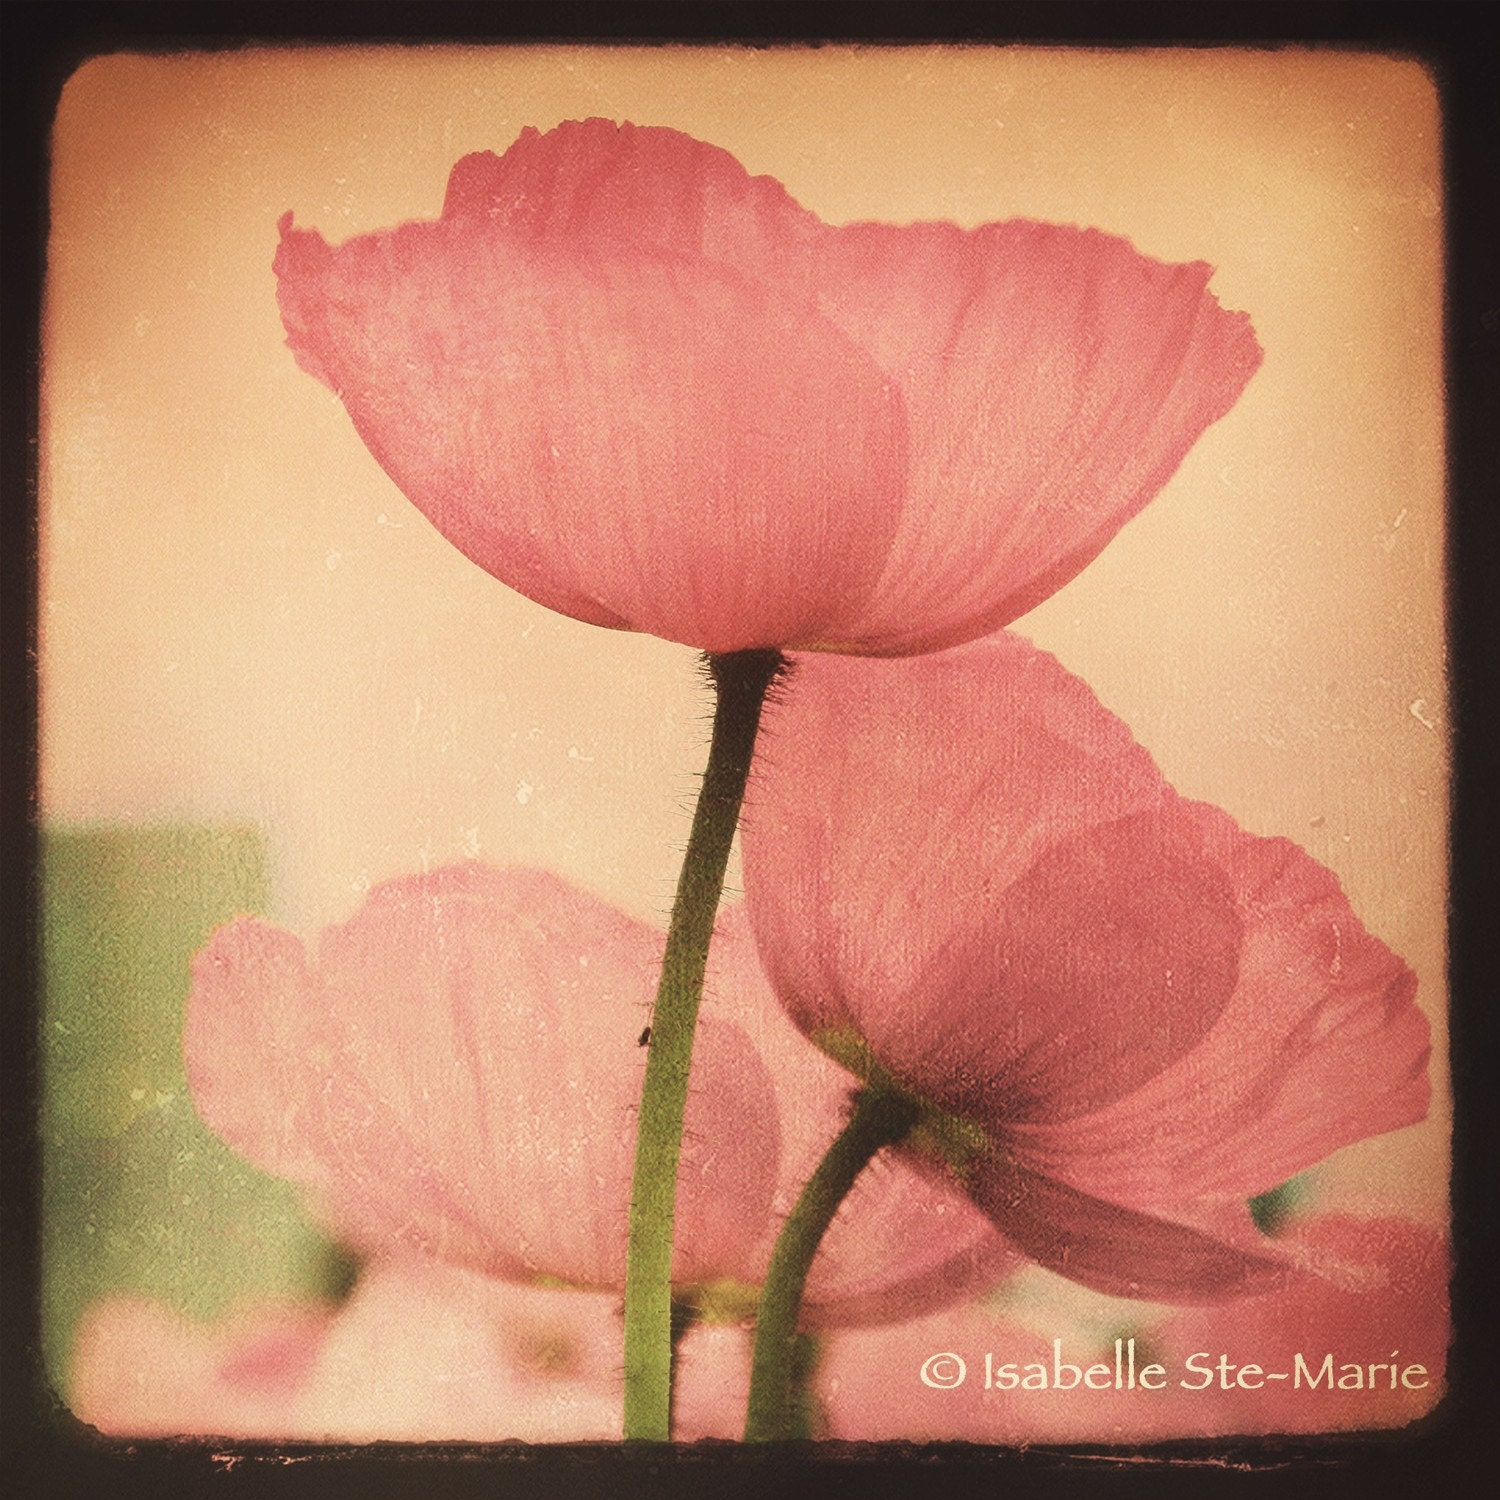 8X8 Nature , Flowers Pink Peonies Fine Art Photography Print -